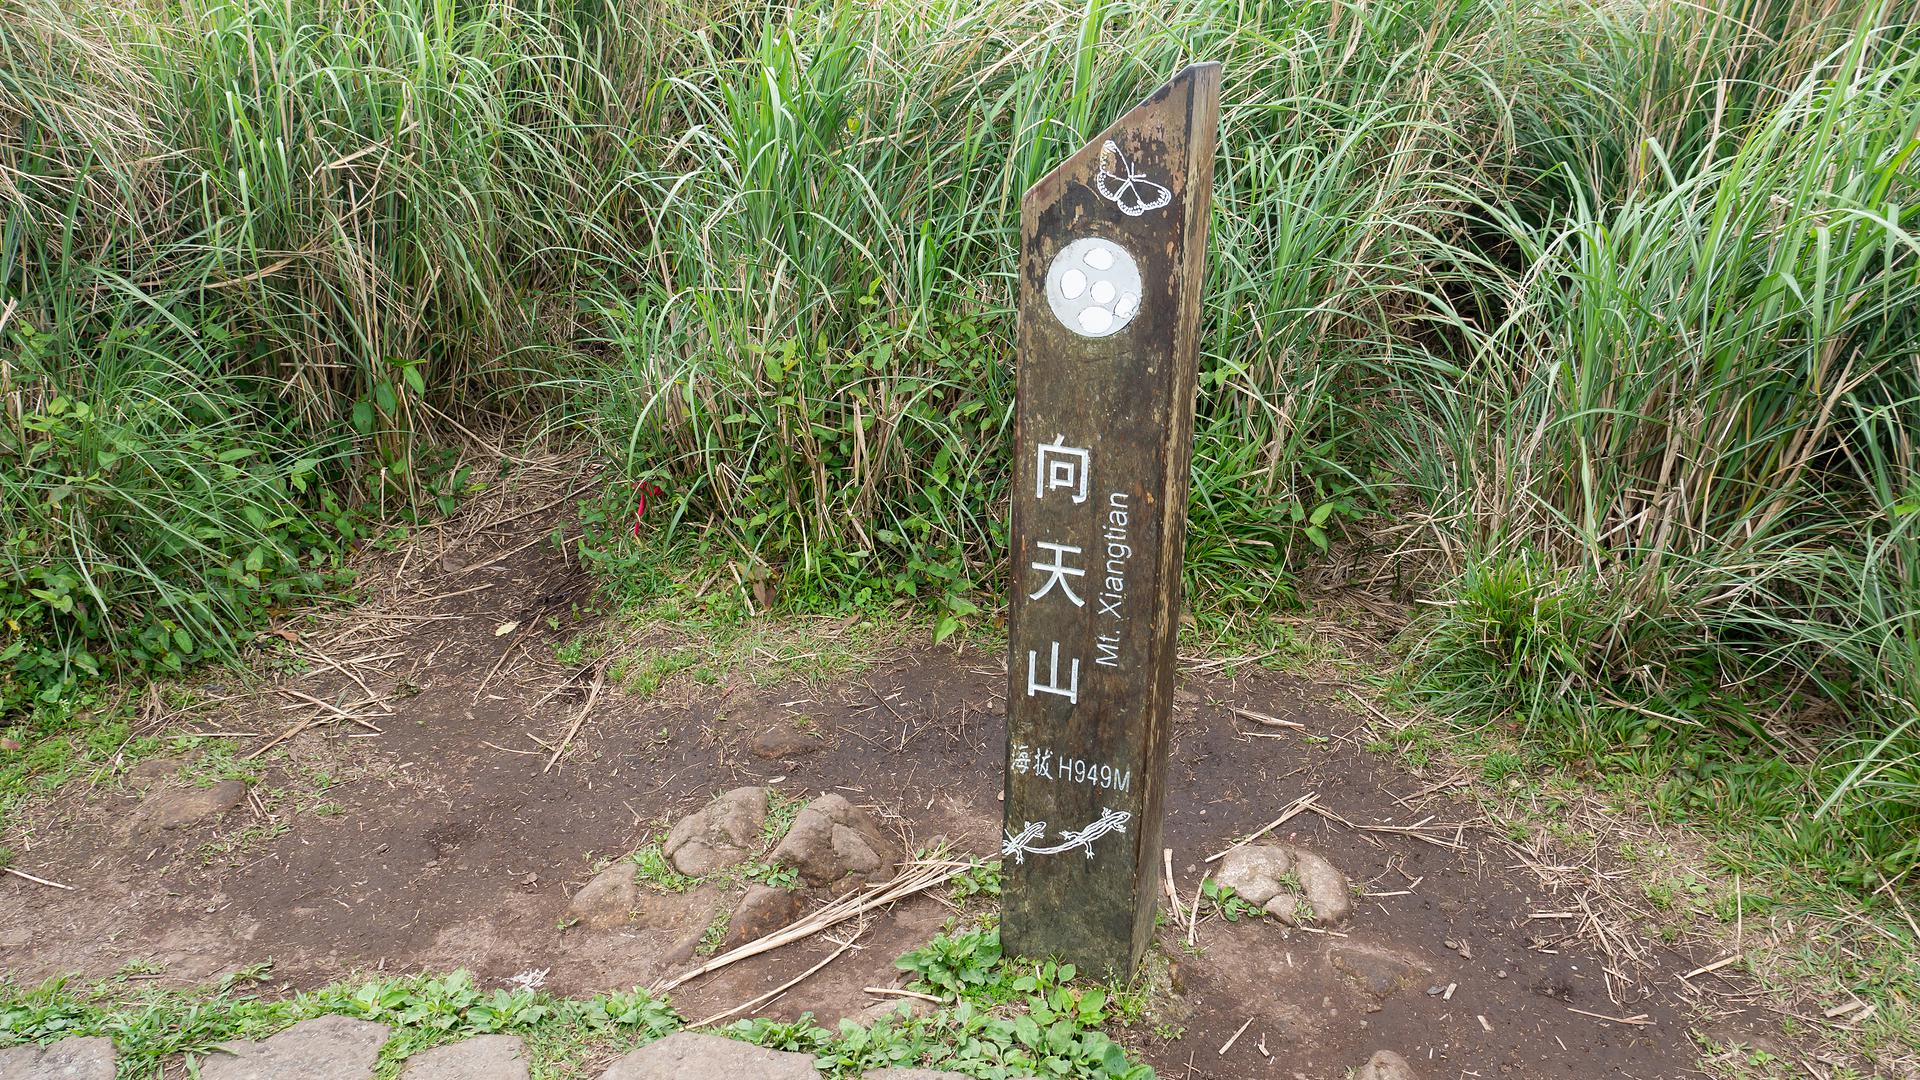 taipei-mountaineering-section-1